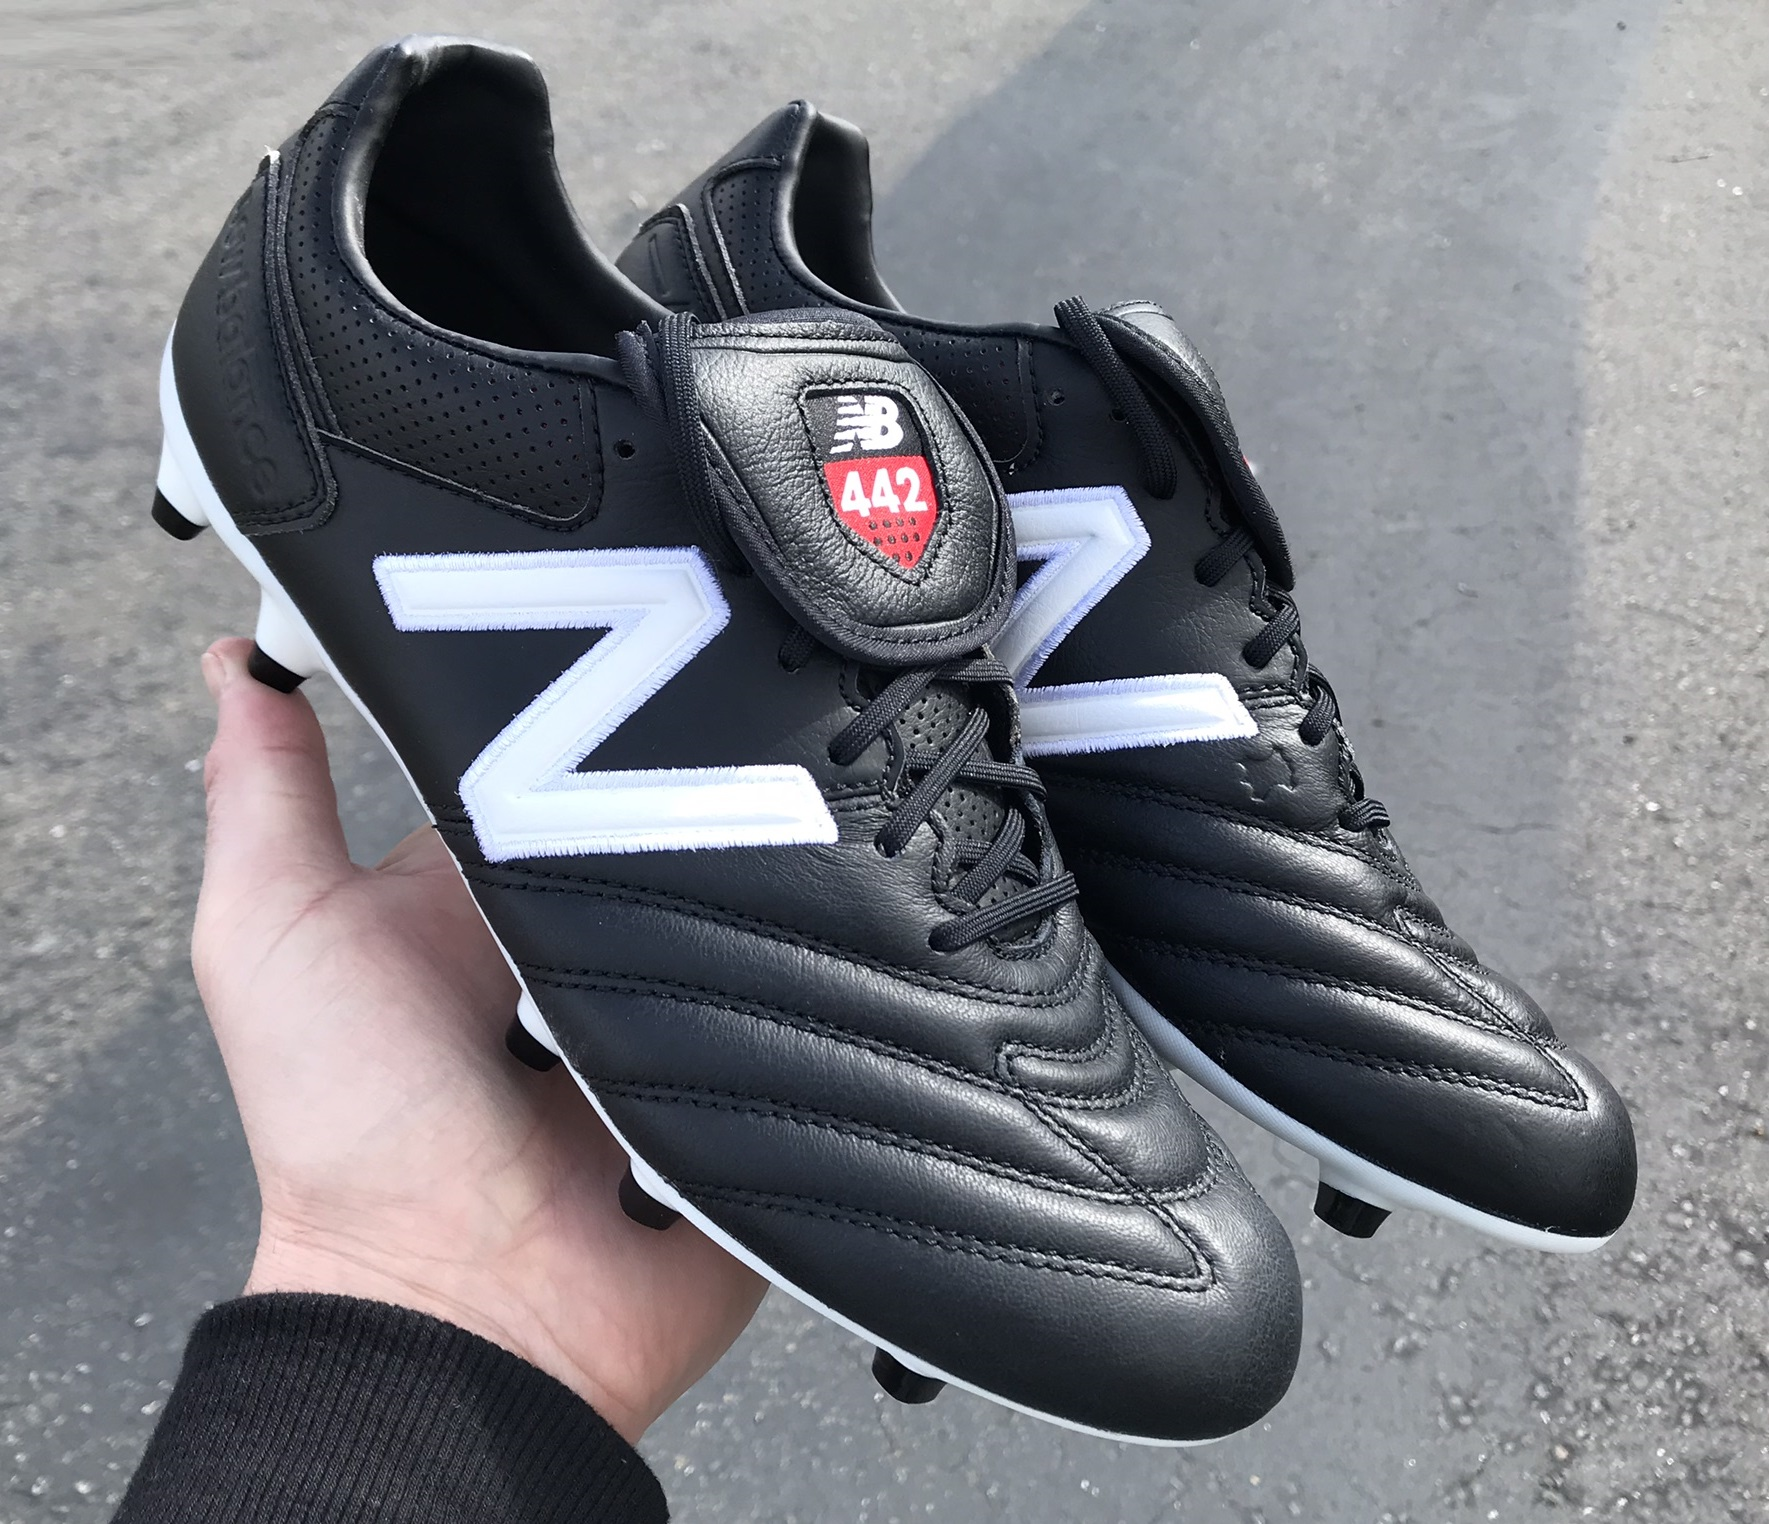 Up Close New Balance 442 | Soccer Cleats 101